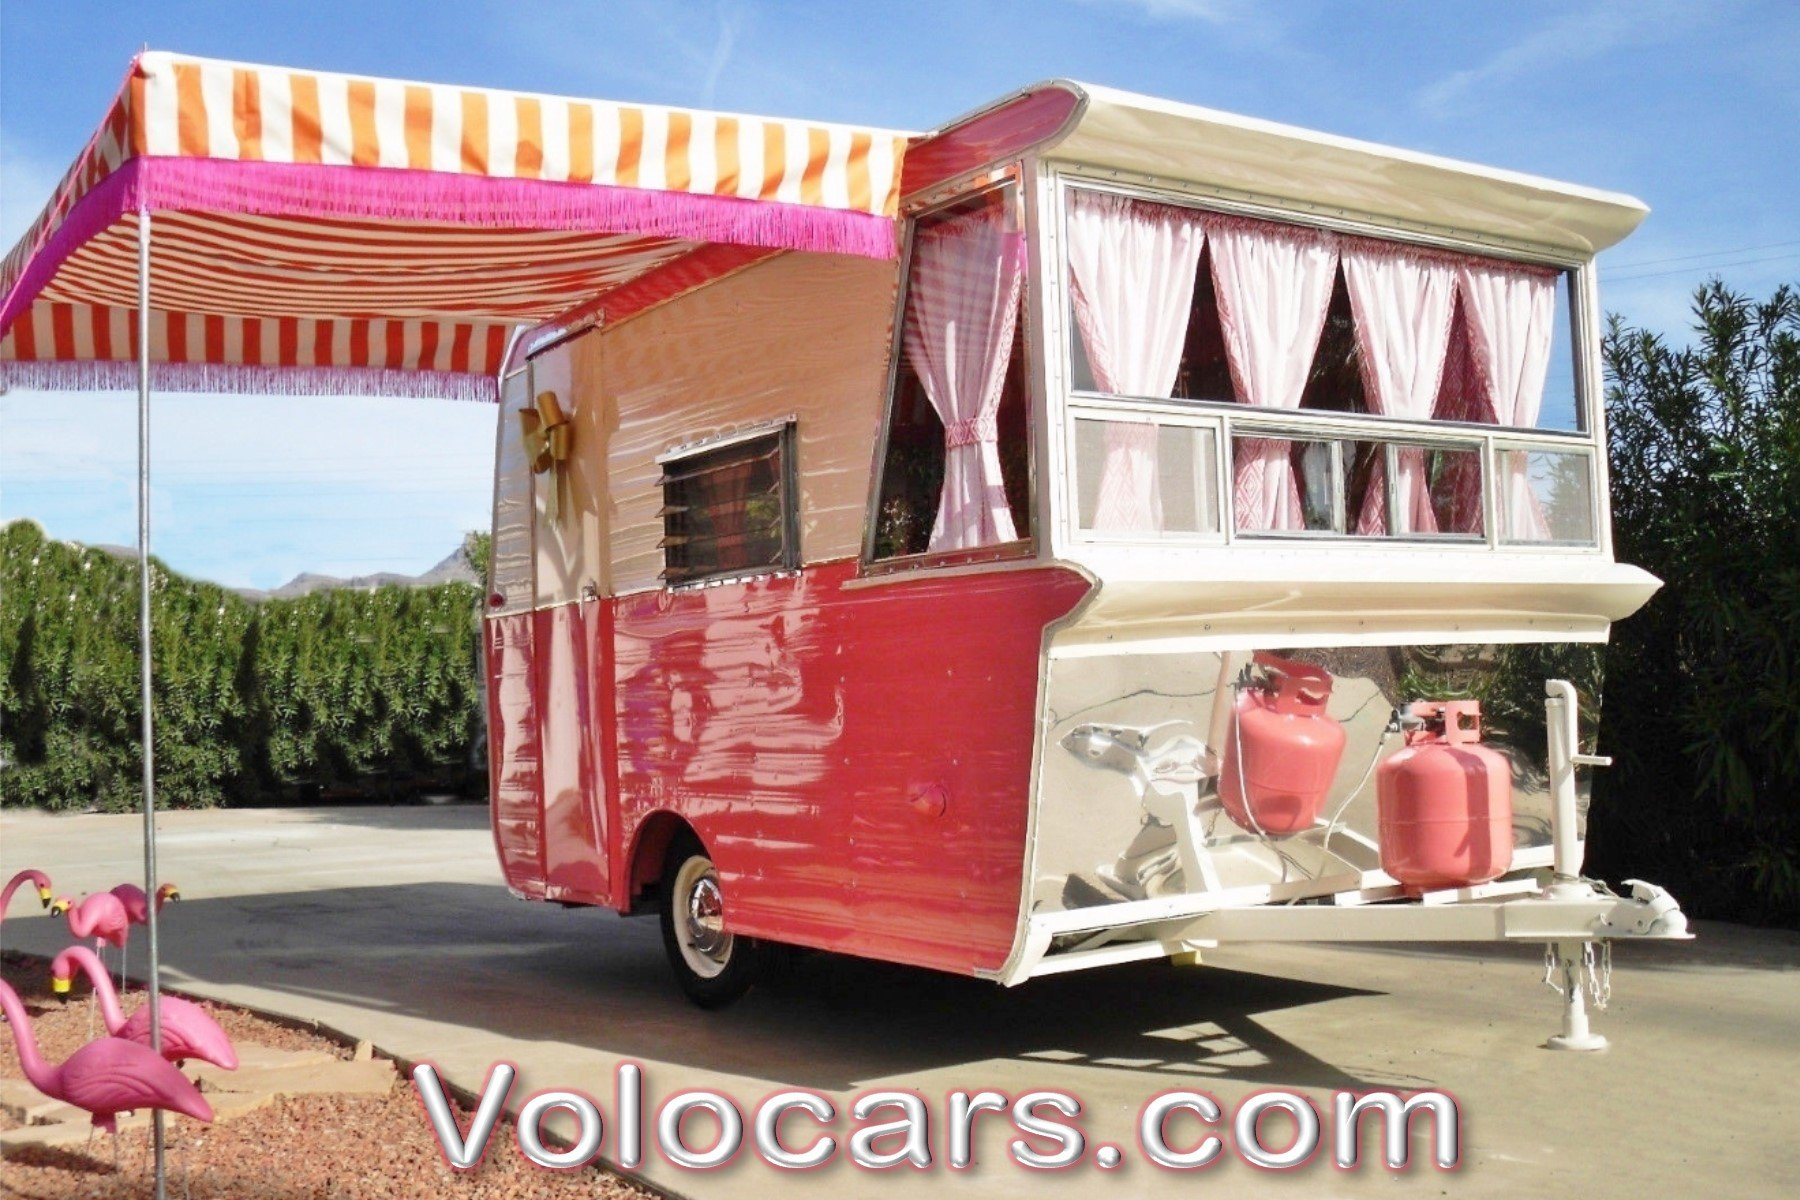 1963 Field and Stream Travel Trailer